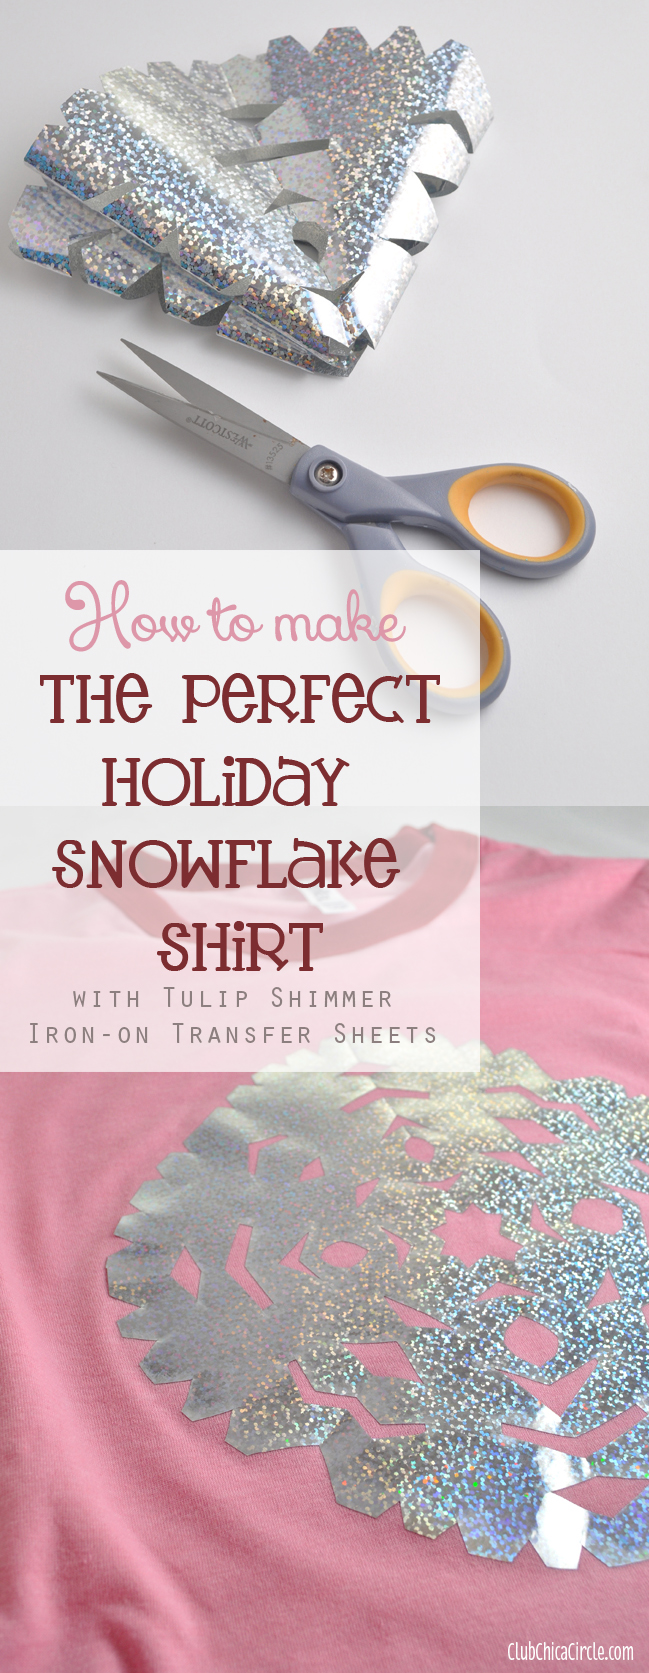 How to Make the Perfect Holiday Snowflake Shirt with Tulip